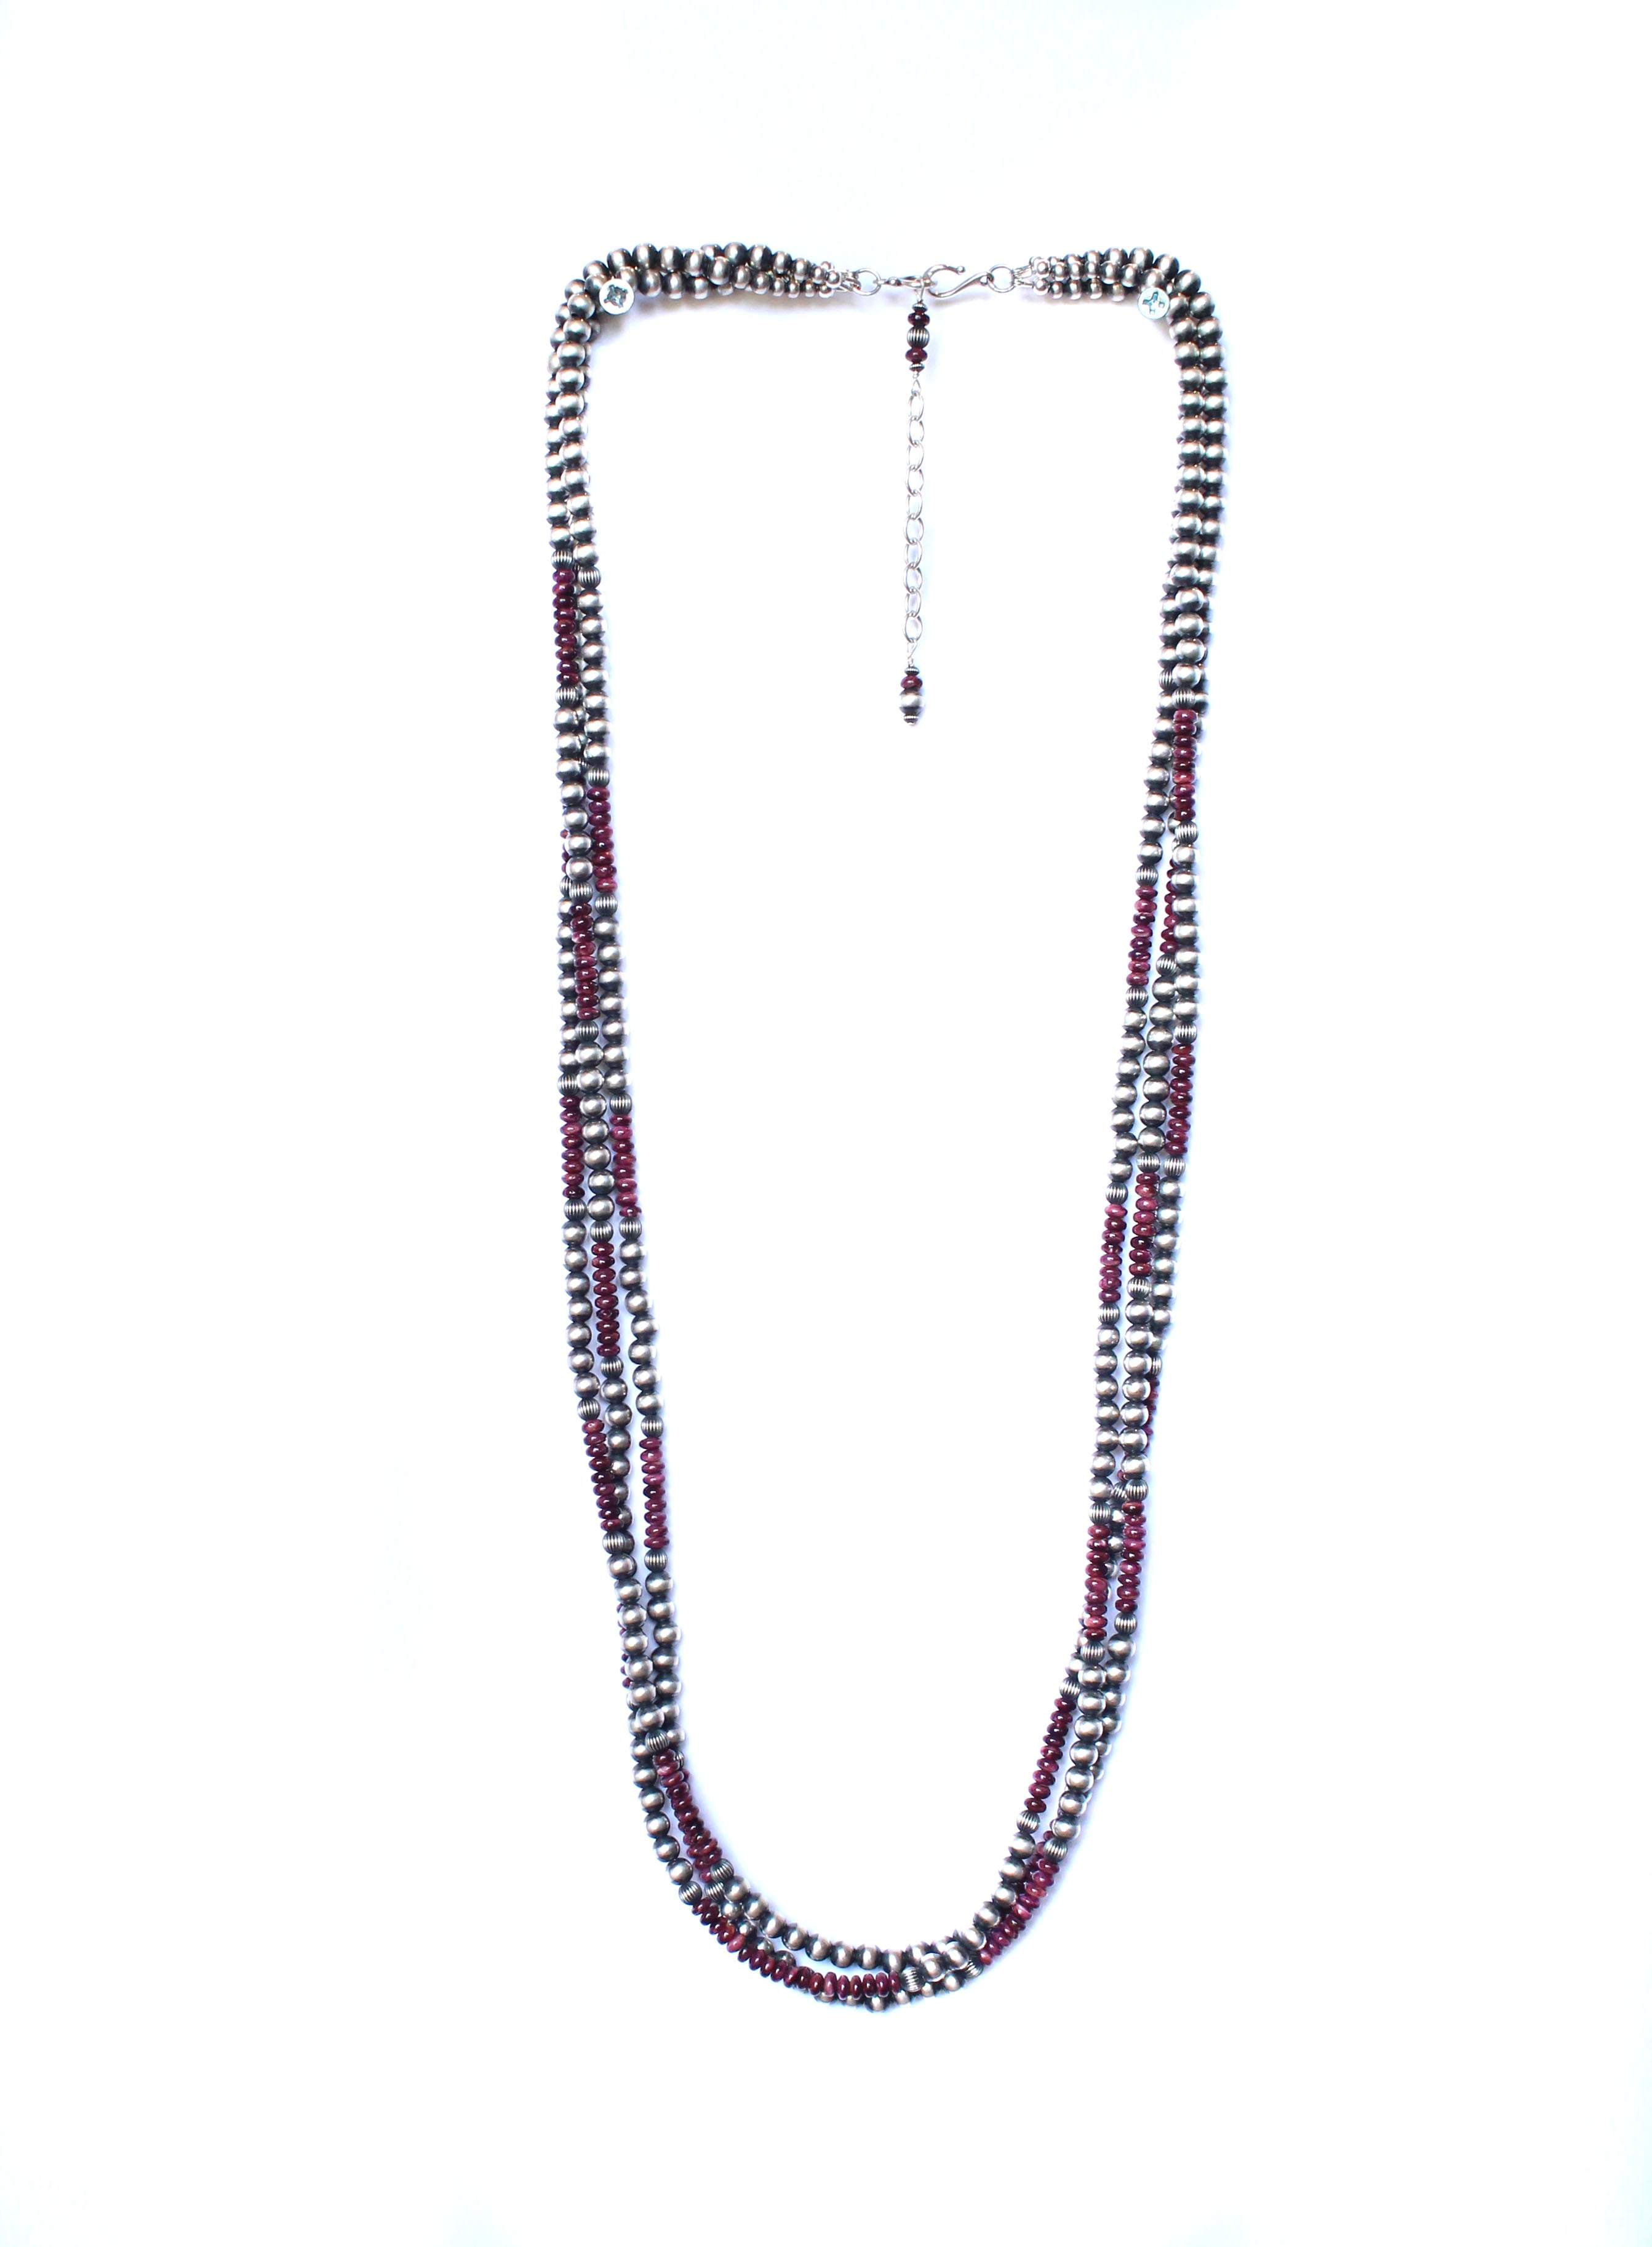 3 Strand Navajo Pearl - Purple Spiny